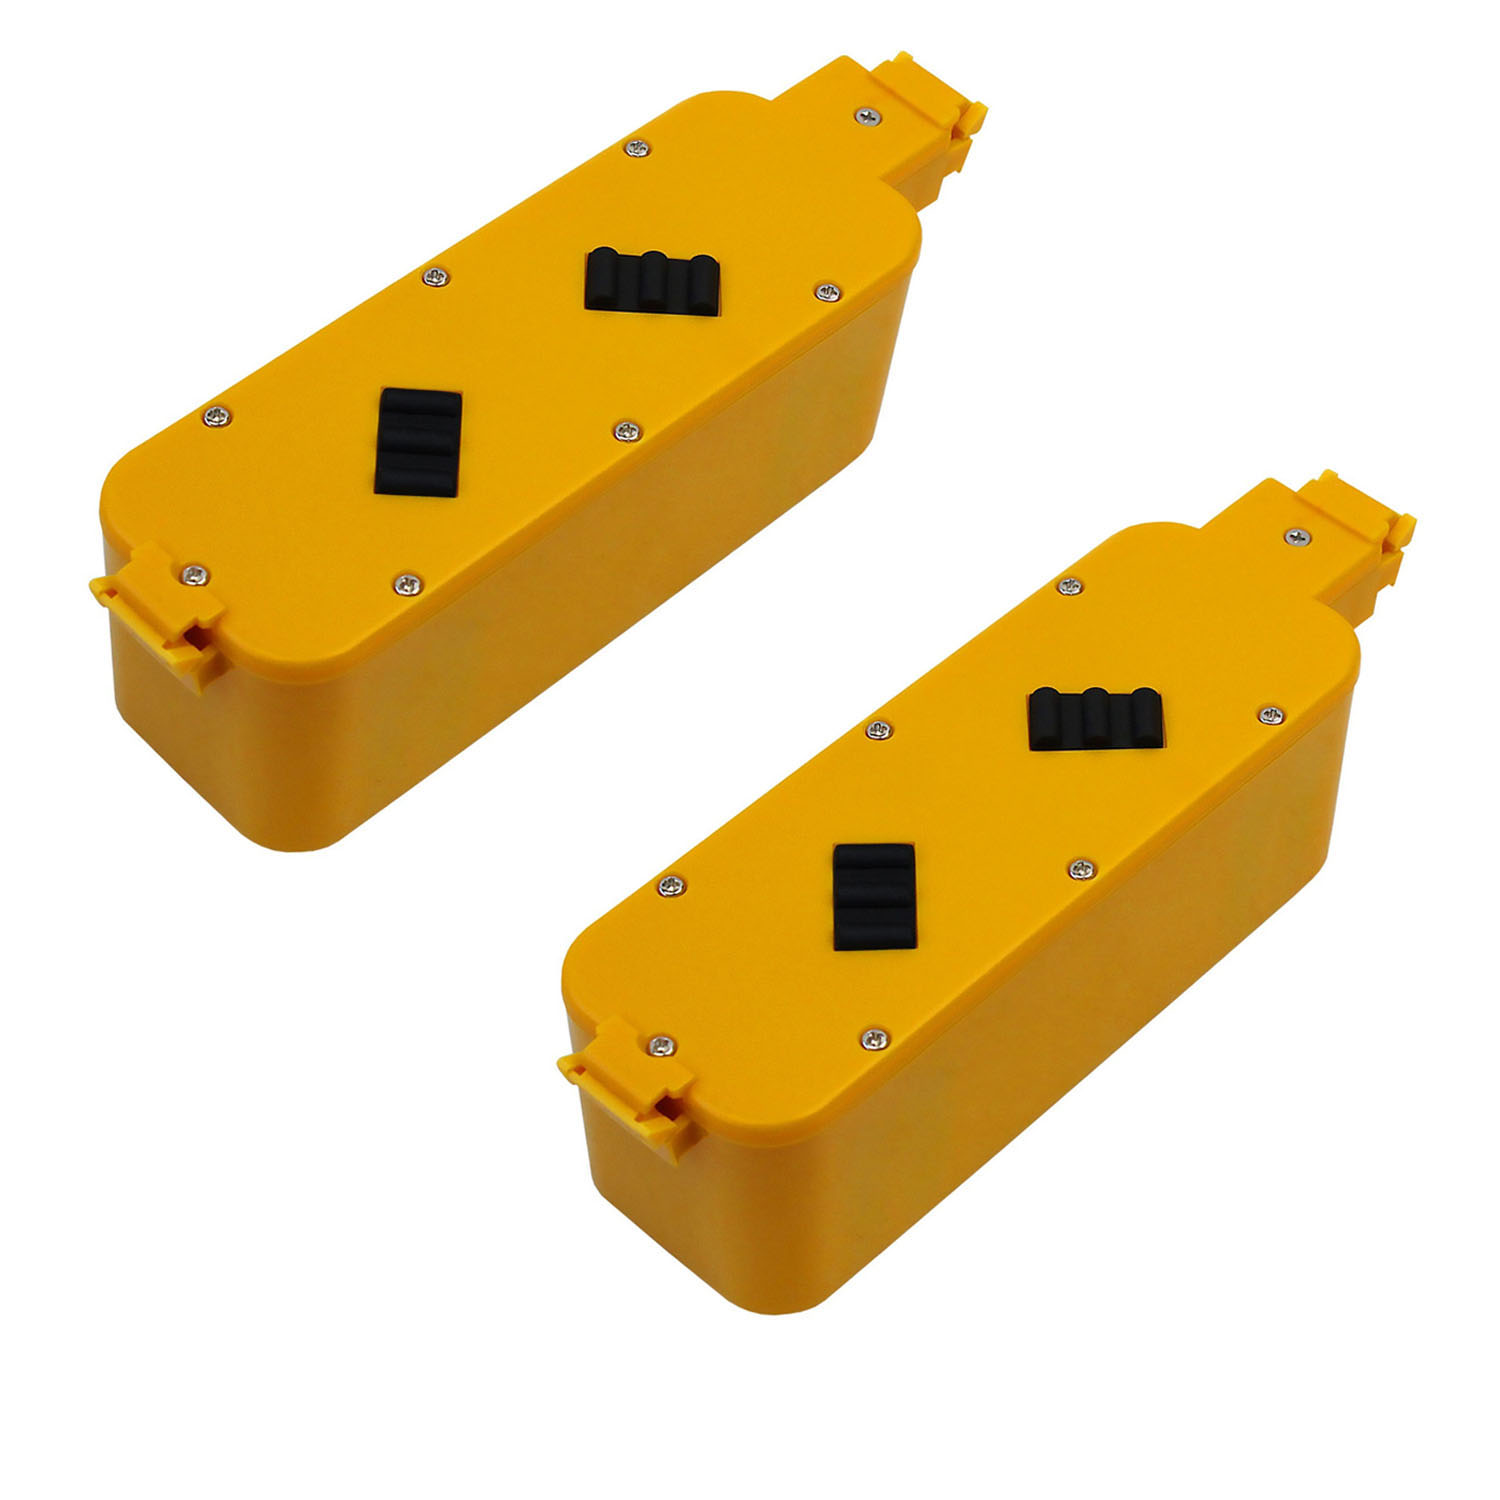 14.4v 2000MAH Battery for Roomba Discovery 400, 410 - 2 Pack